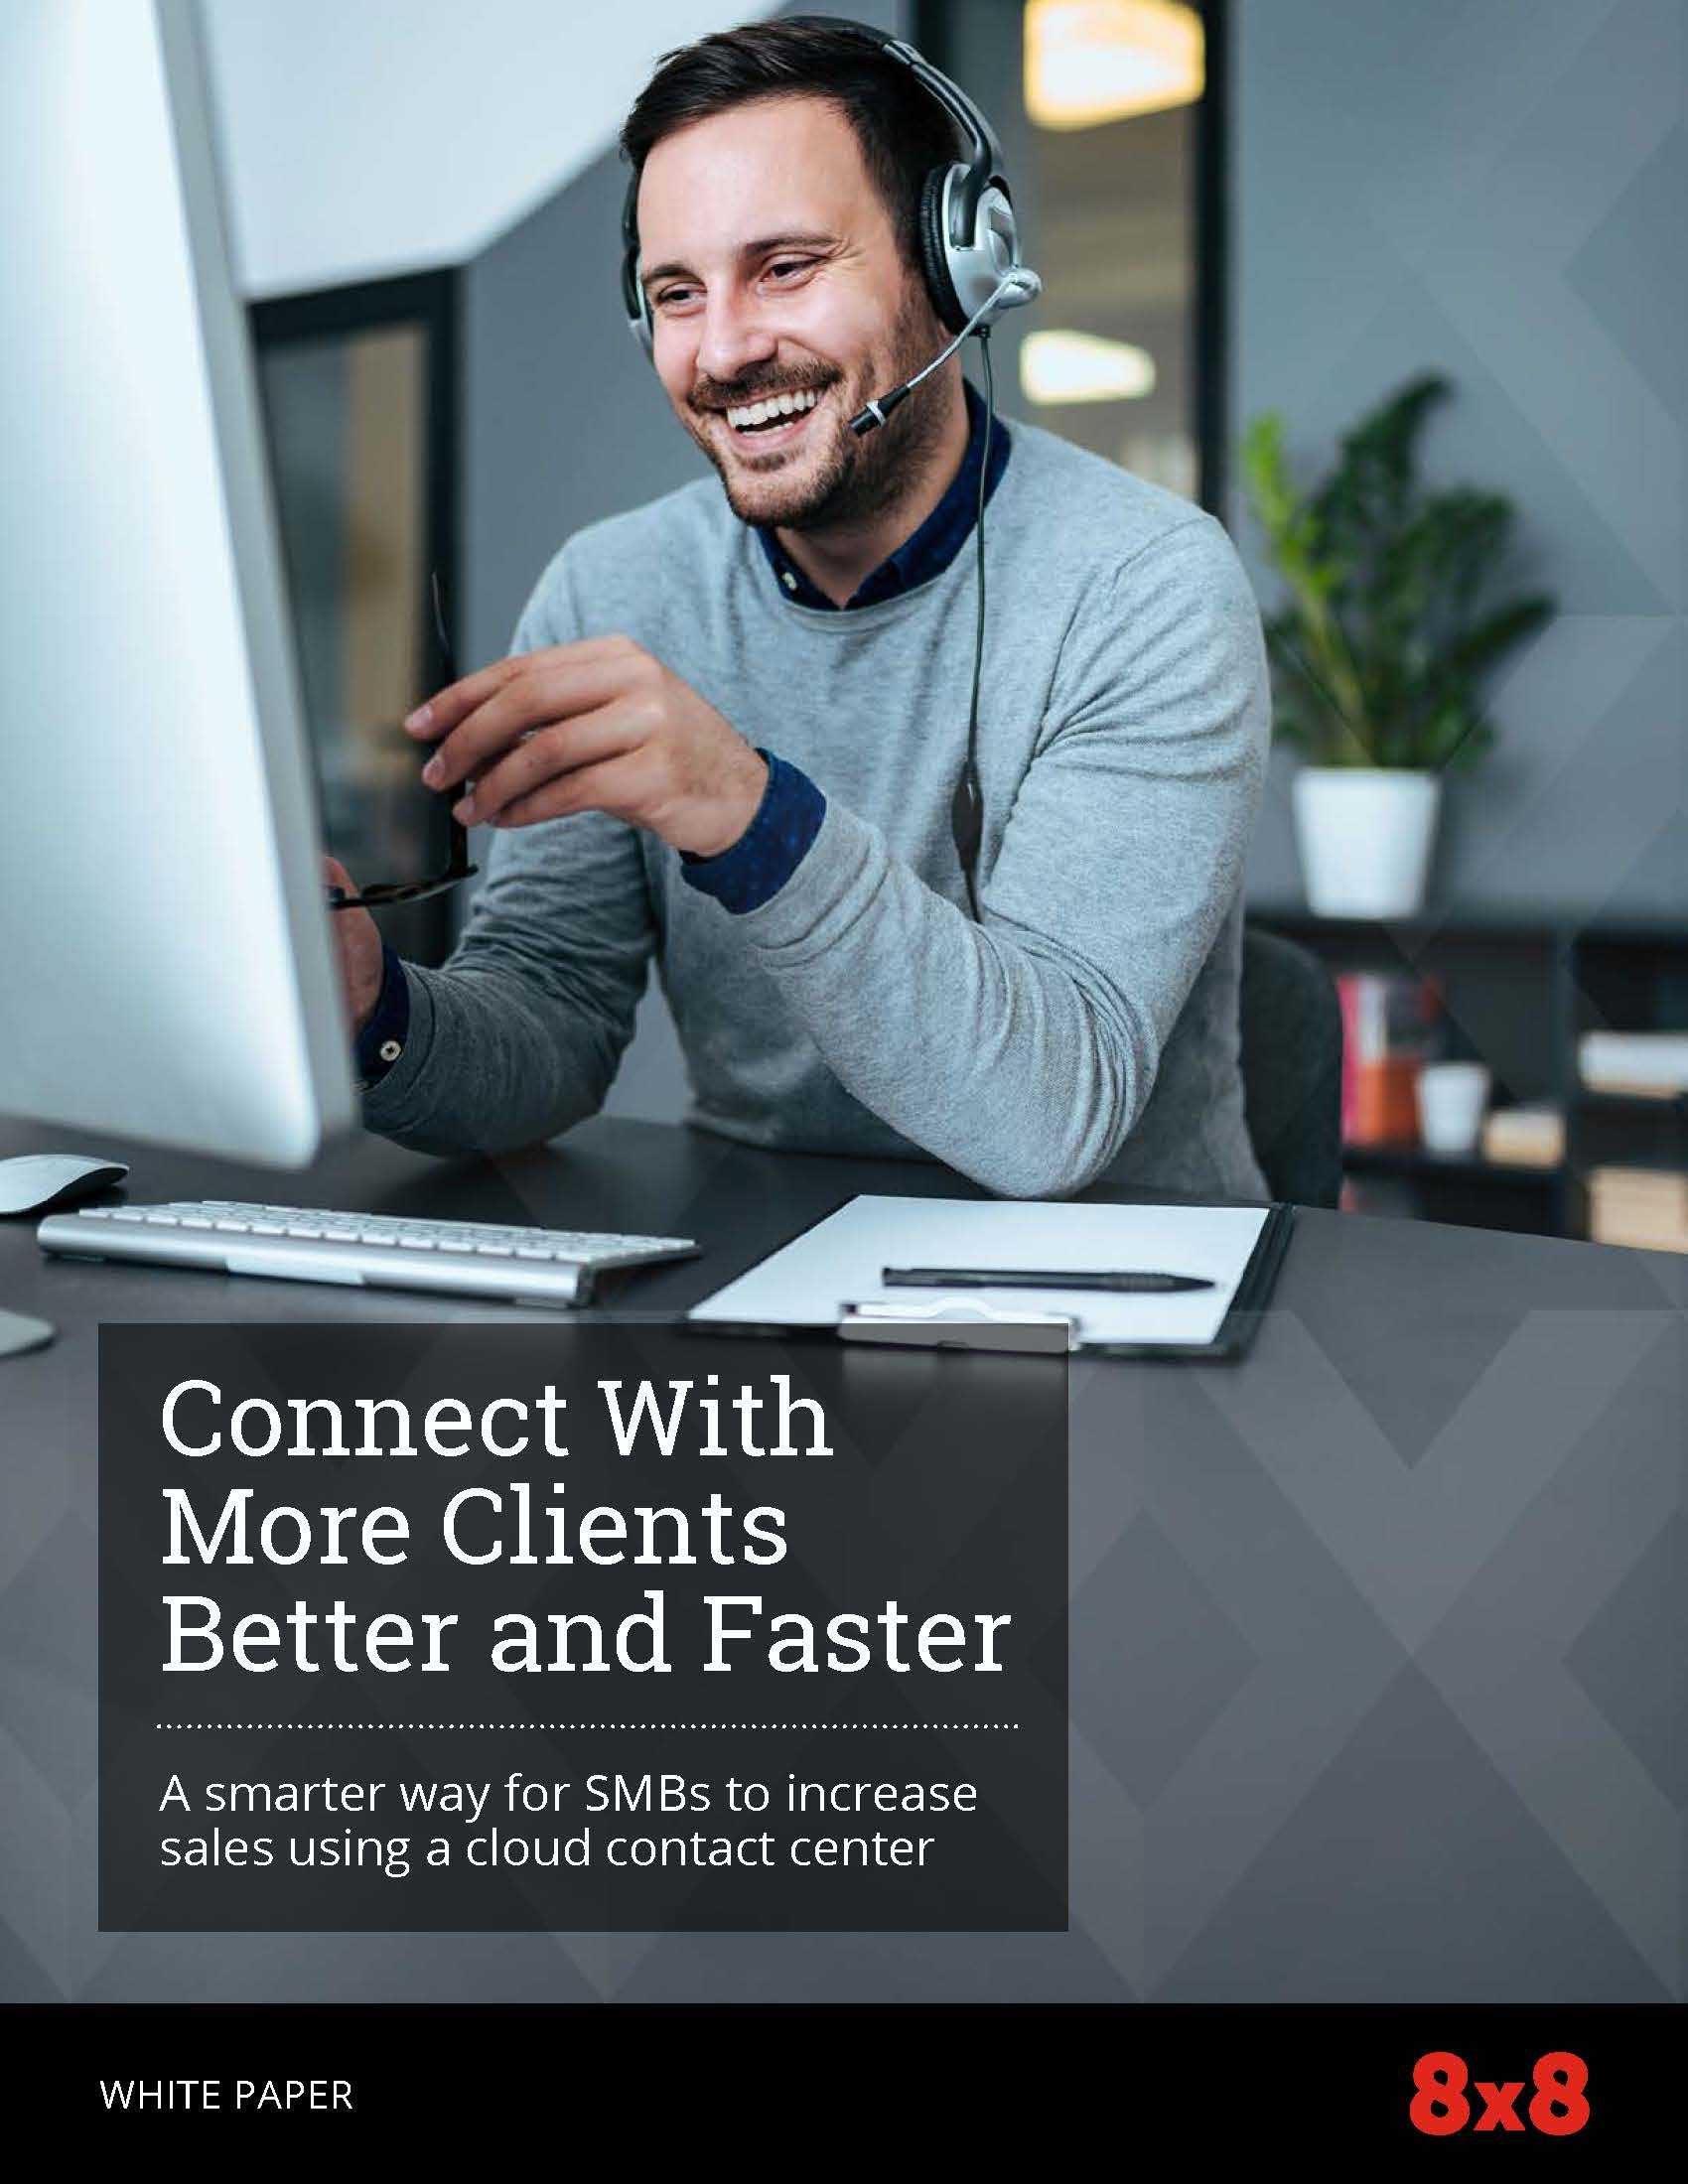 connect-more-with-clients-better-and-faster